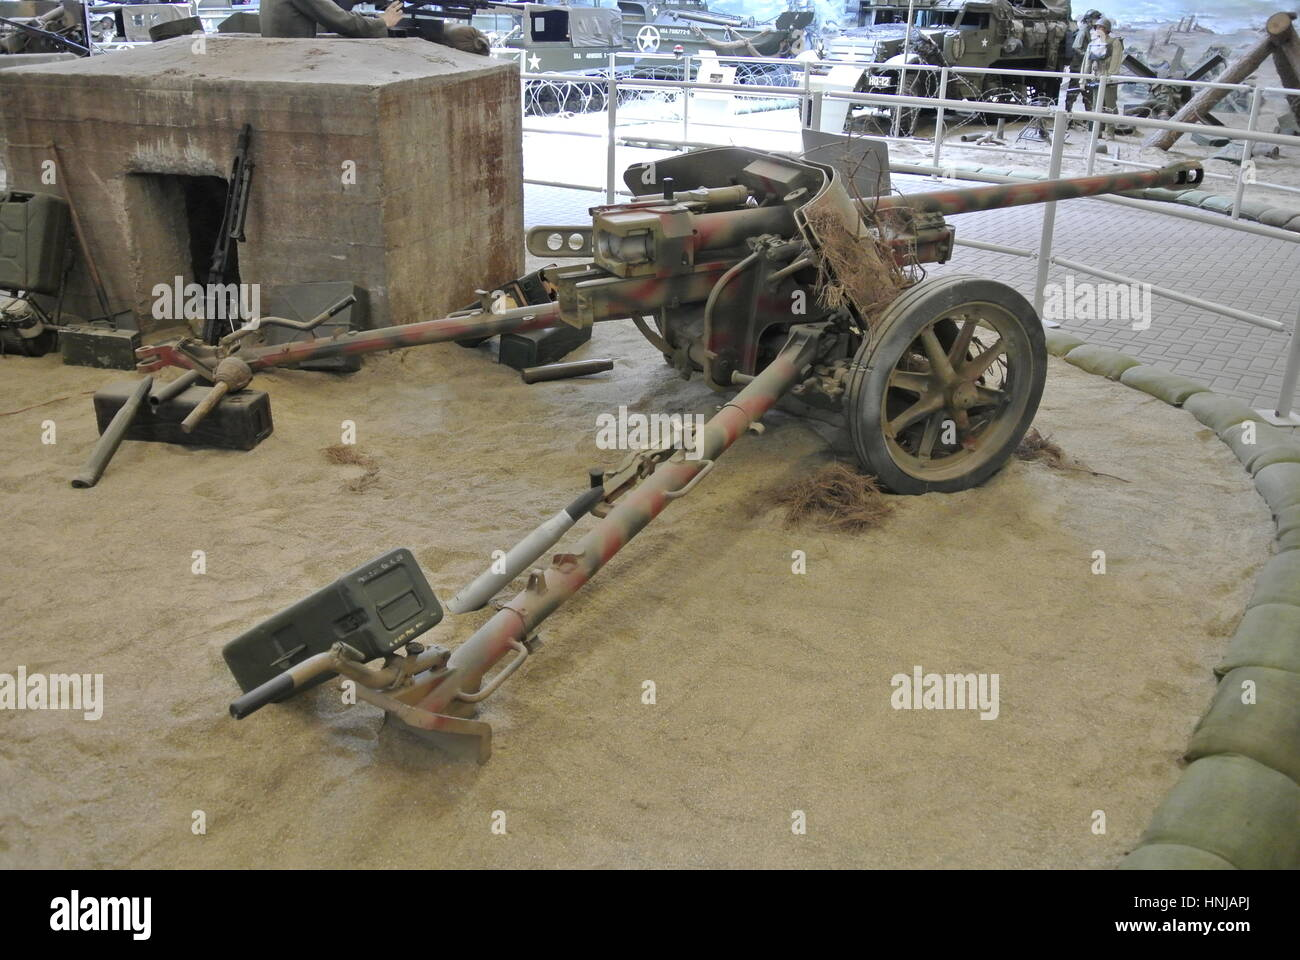 German 50 Mm Anti Tank Gun: German Pak 38 Anti-Tank Gun Stock Photo, Royalty Free